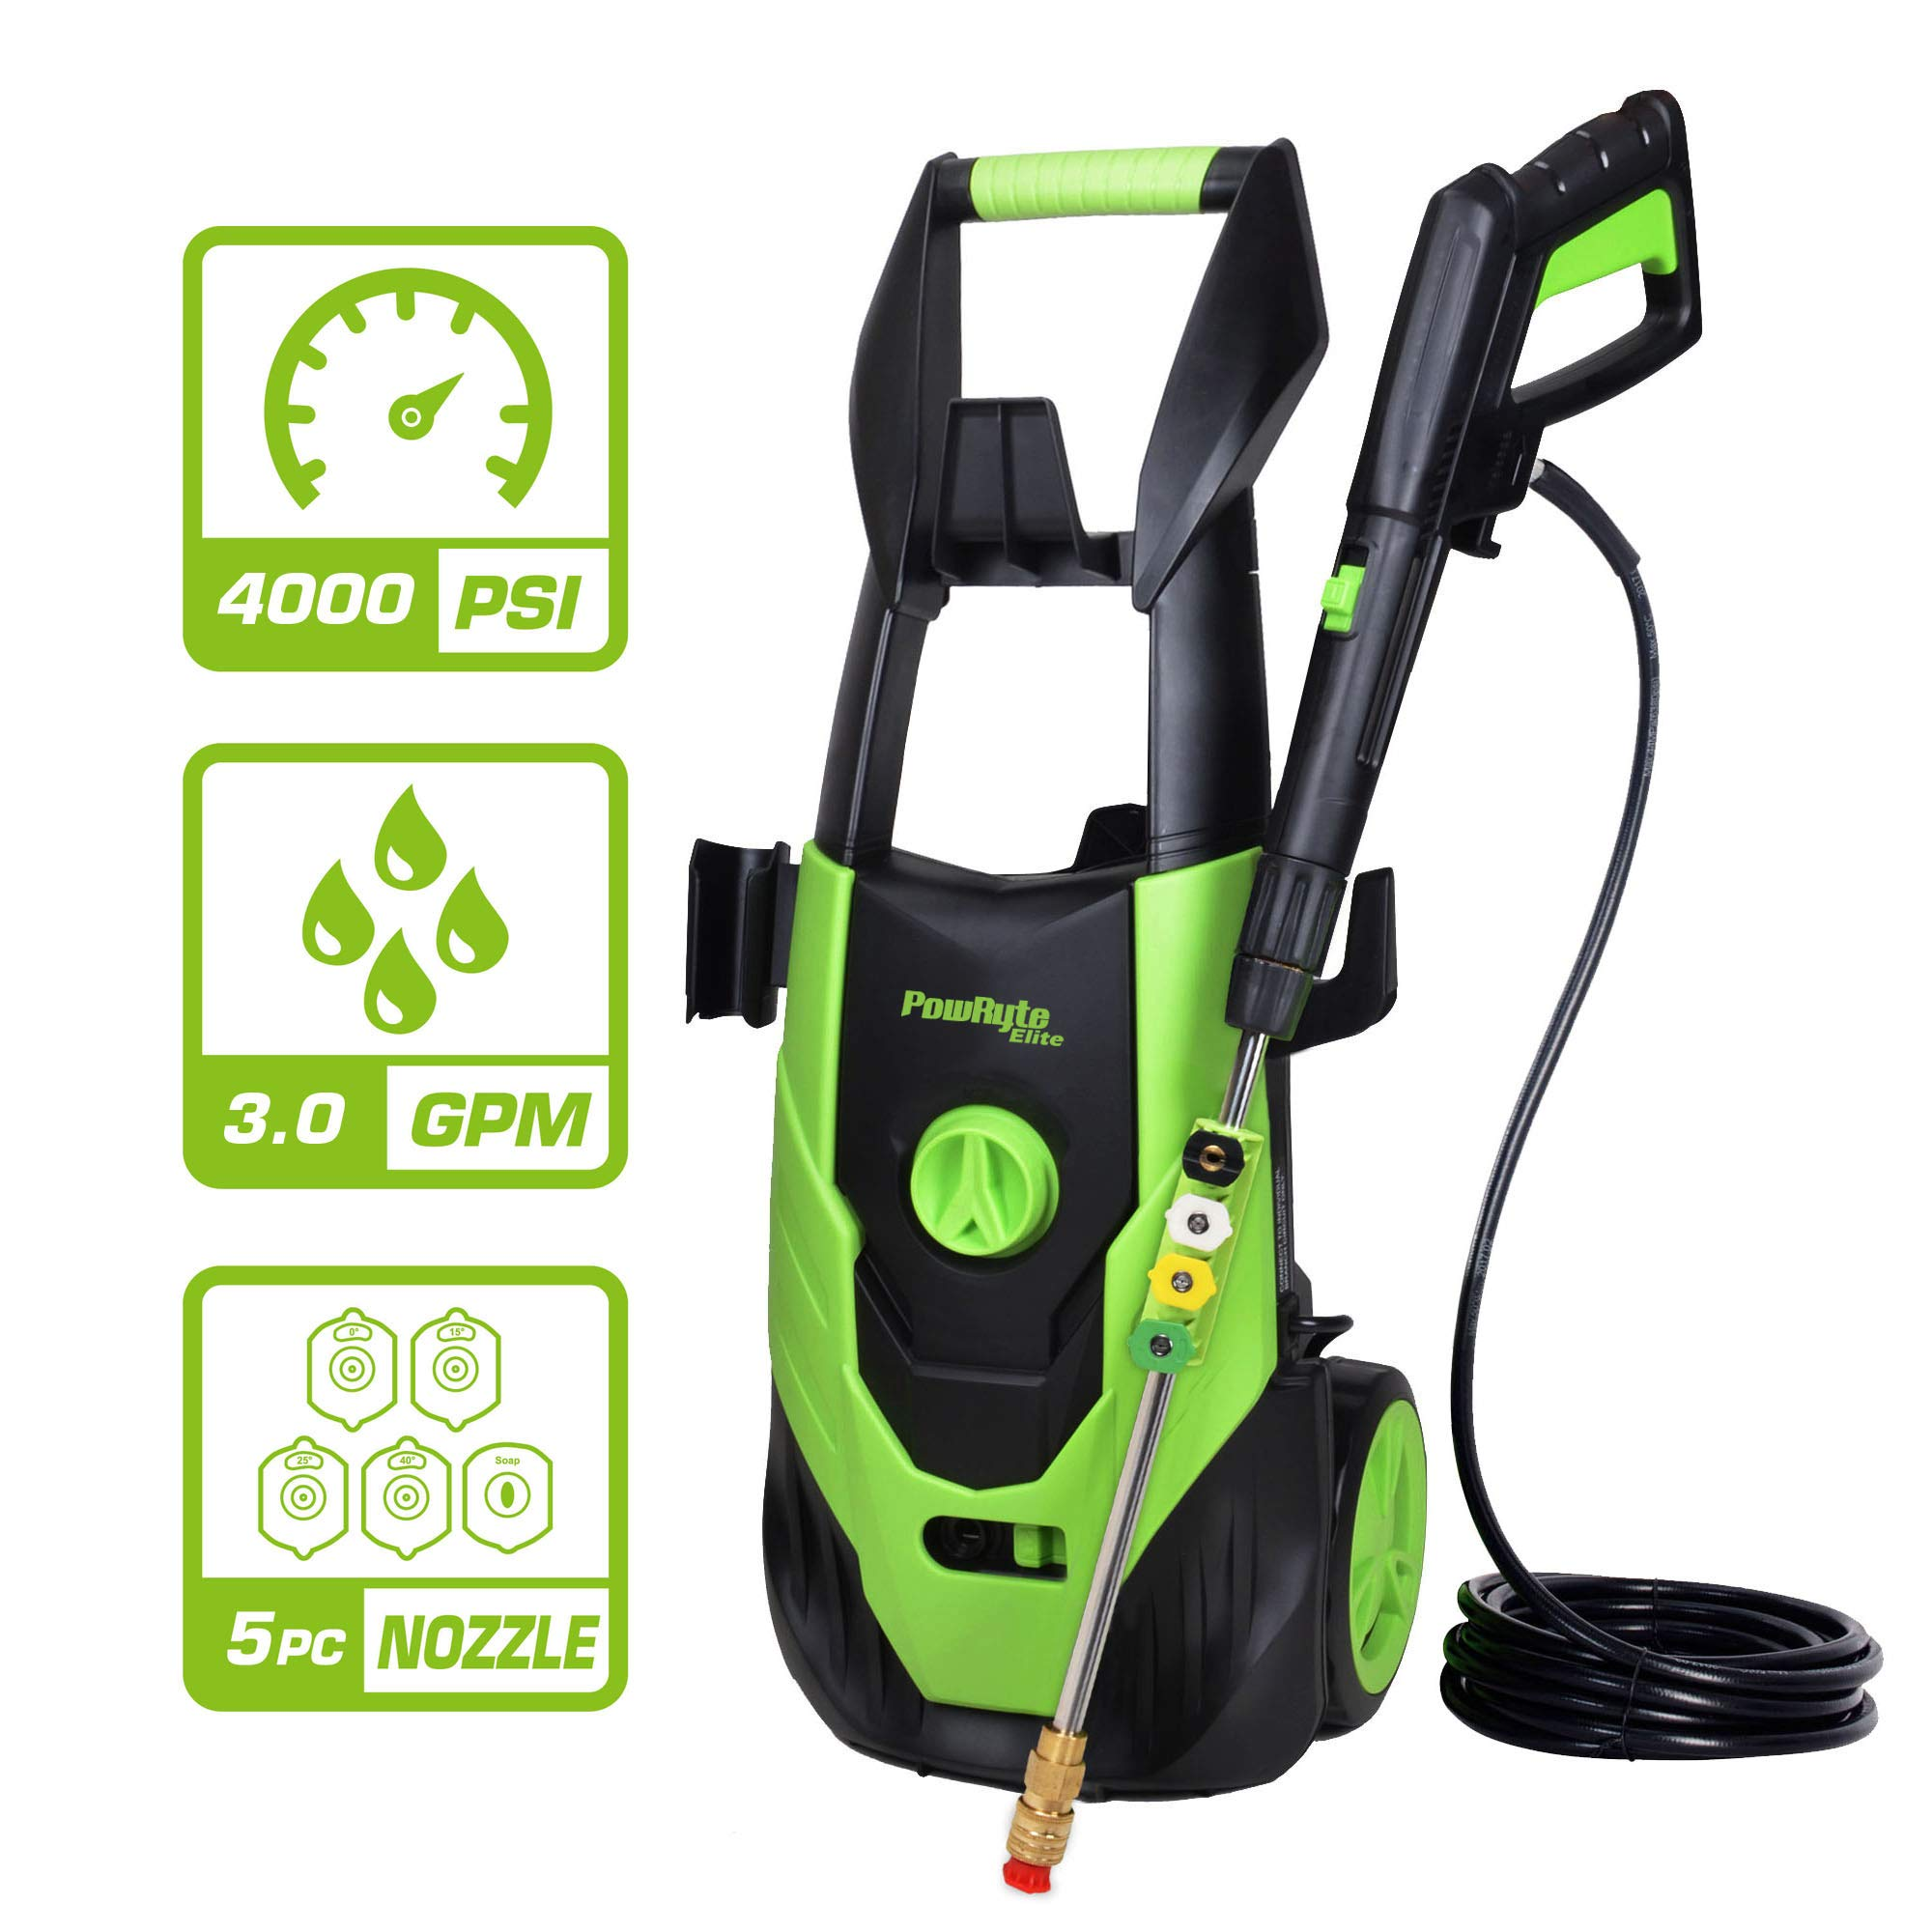 PowRyte Elite 4000PSI 3.0GPM Electric Pressure Washer, Electric Power Washer with 5 Quick-Connect Spray Tips,Car Washer with Thermal Protector,Green